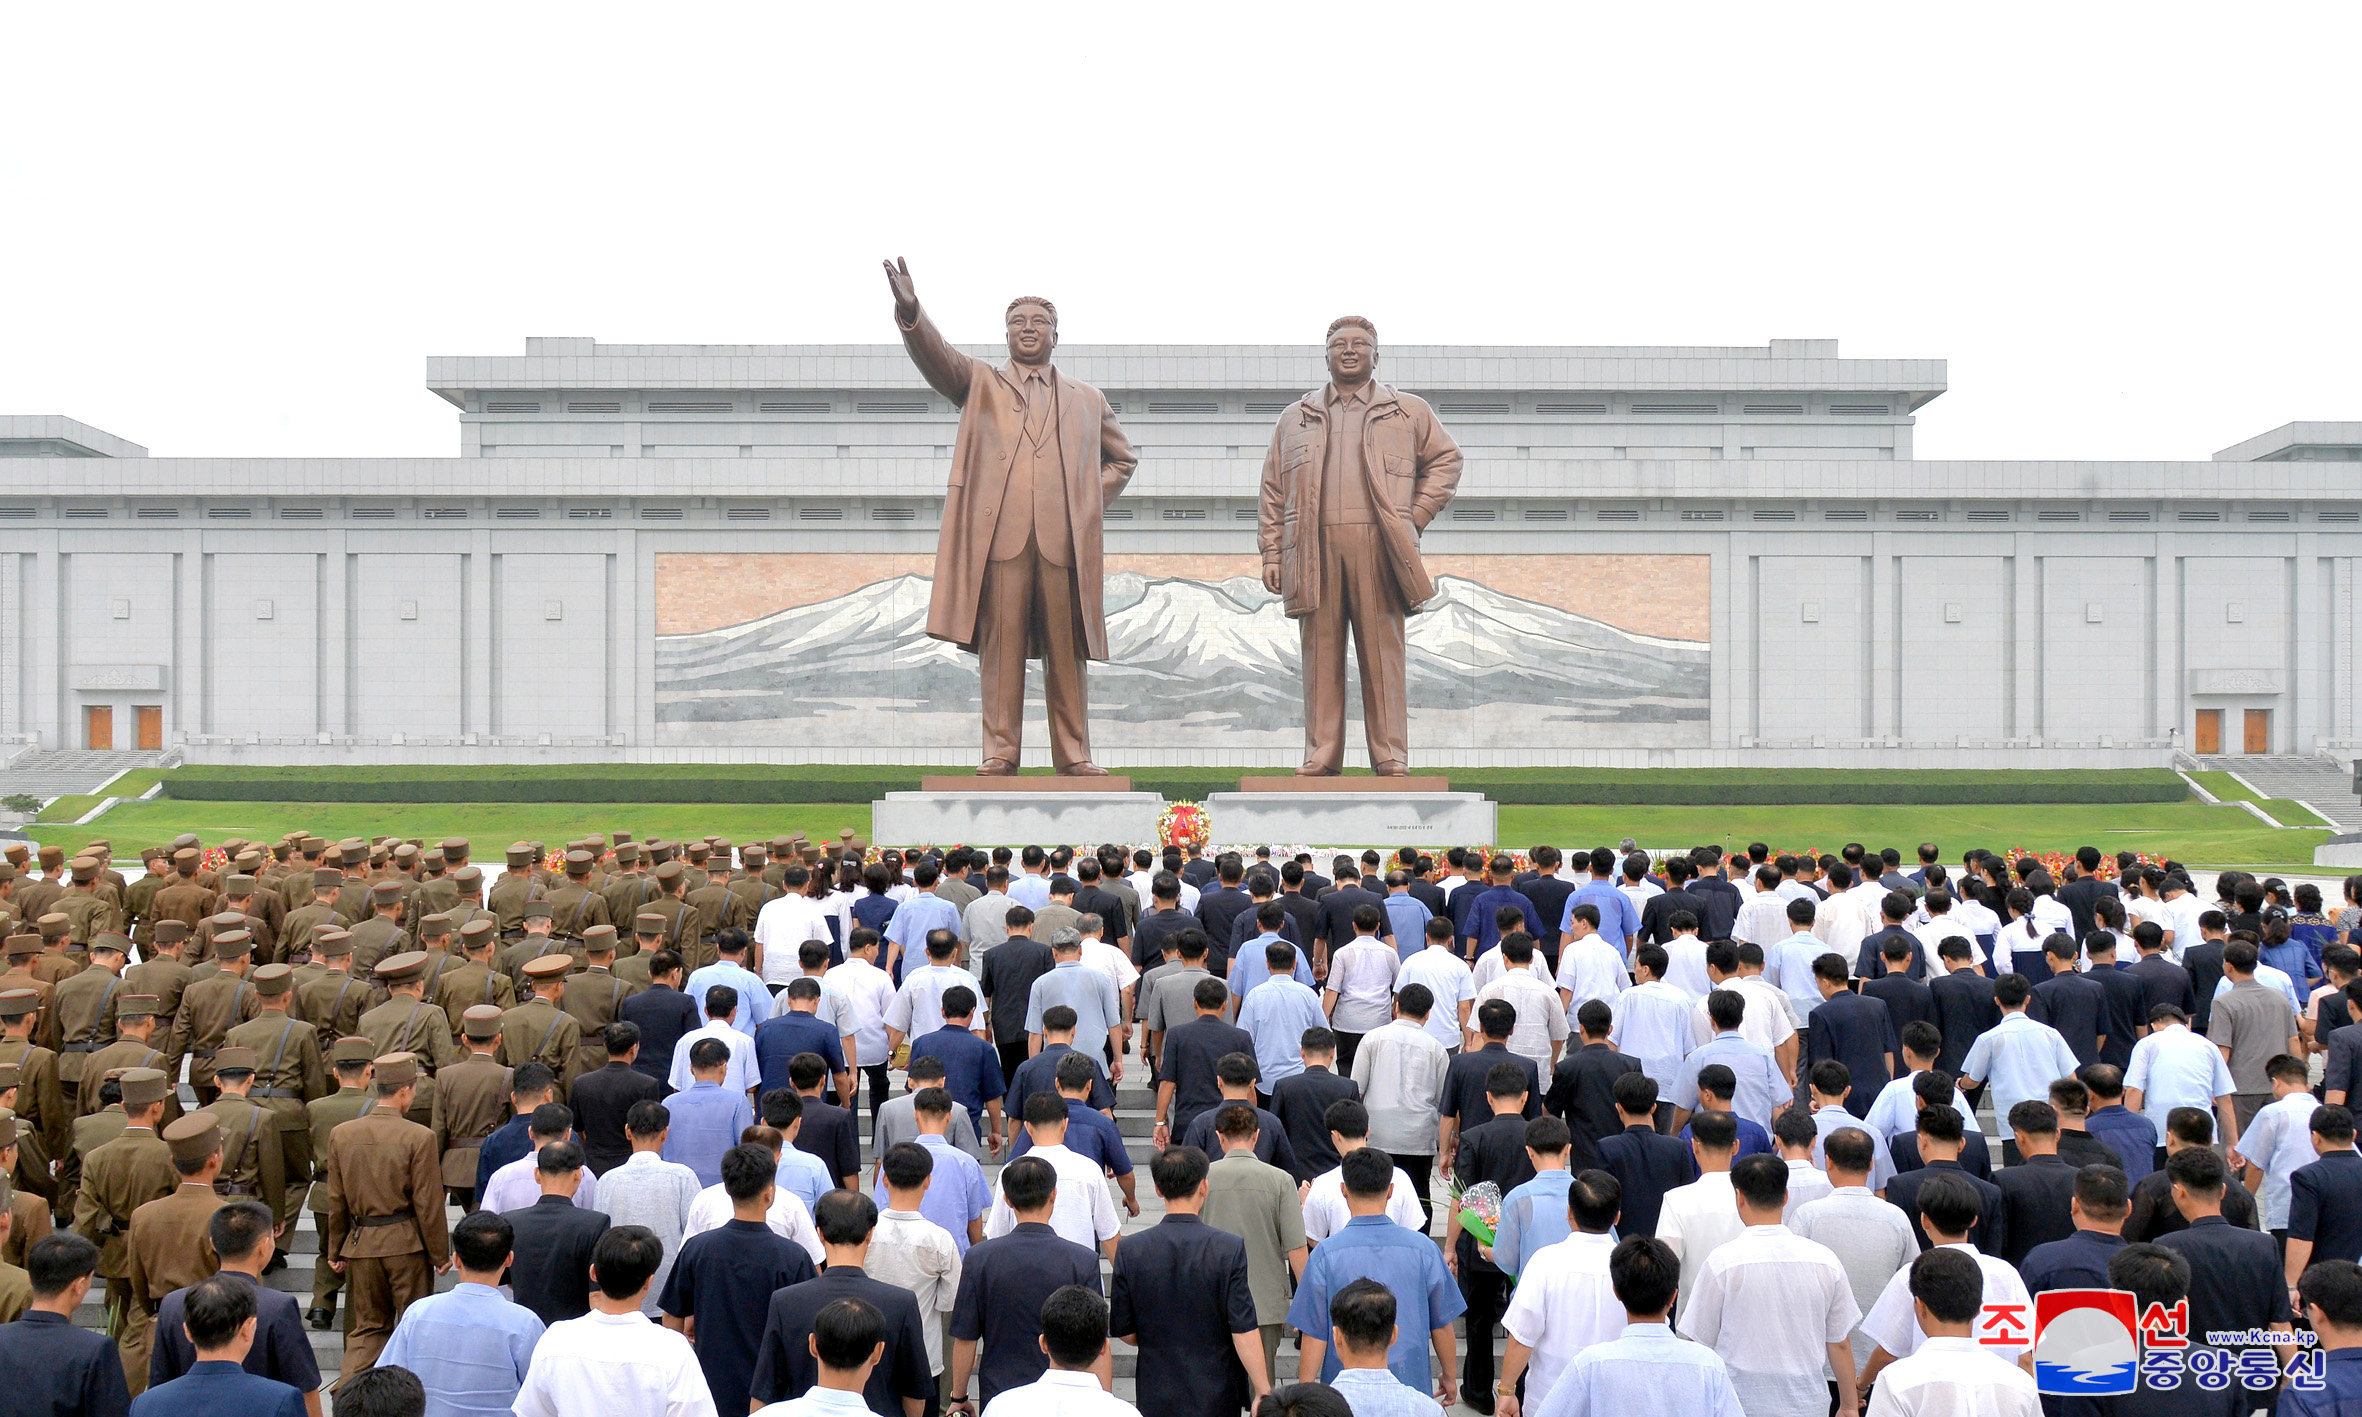 People and soldiers gather to offer flowers to the statues of state founder Kim Il Sung and former leader Kim Jong Il on the Day of Songun at Mansu hill, Pyongyang, North Korea, in this undated photo released by North Korea's Korean Central News Agency (KCNA) on August 26, 2018. KCNA via REUTERS